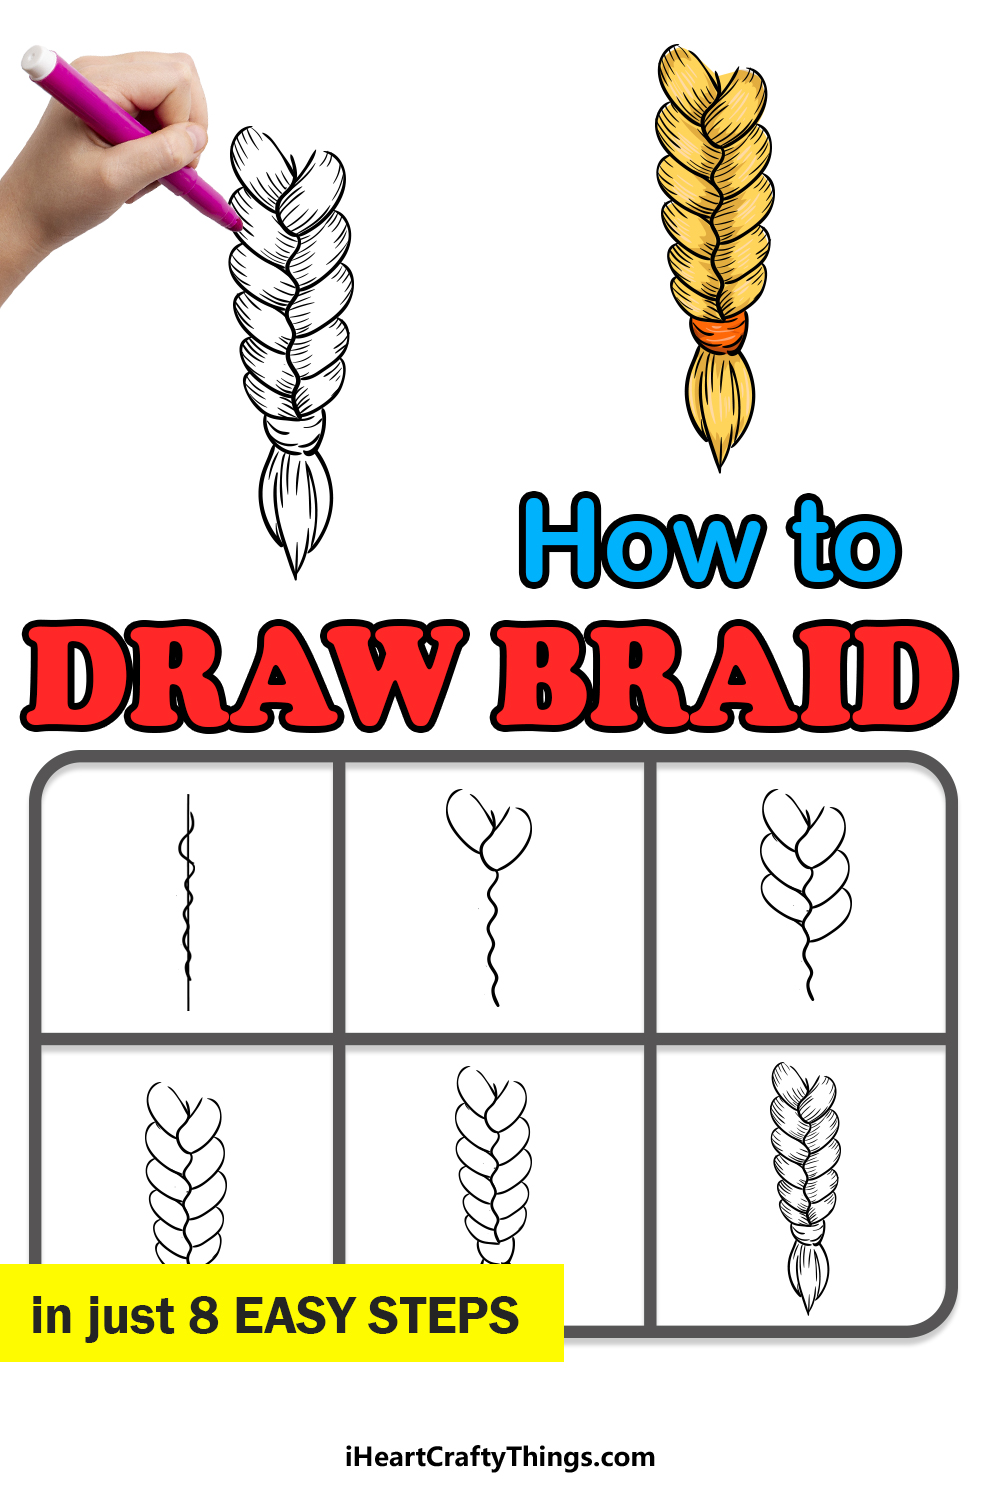 how to draw braid in 8 easy steps